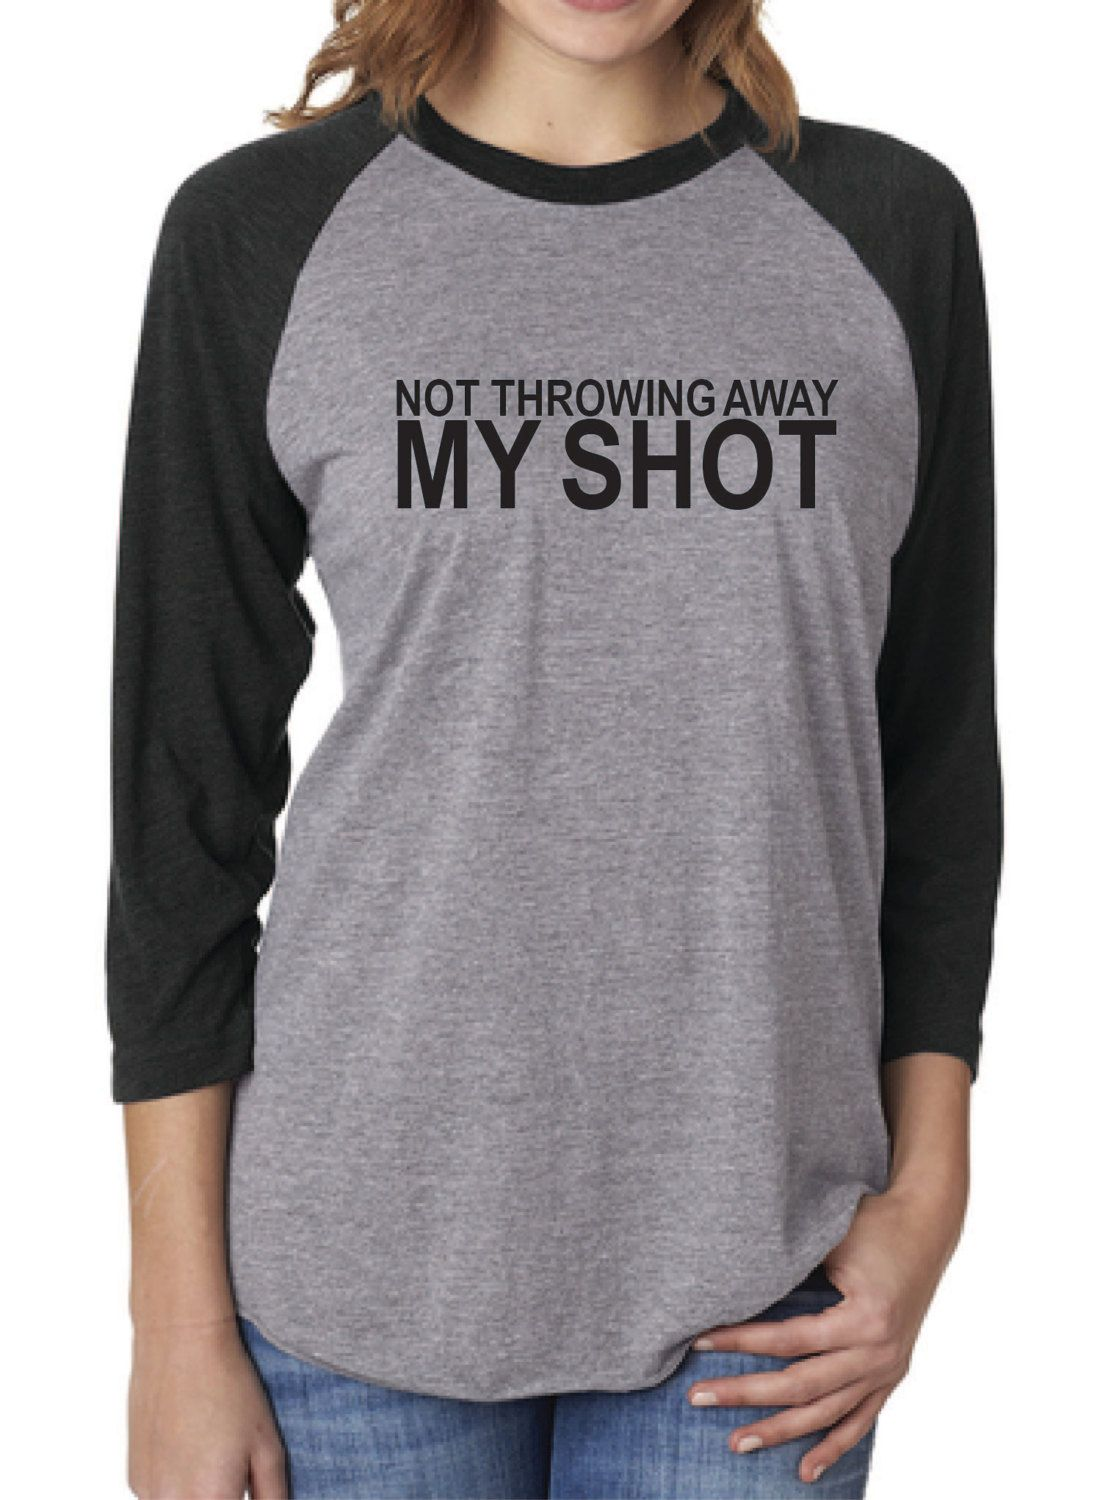 not throwing away my shot screen printed raglan baseball t shirt adult unisex by halloween shirtfunny halloweenwomen - Halloween Shirts For Ladies